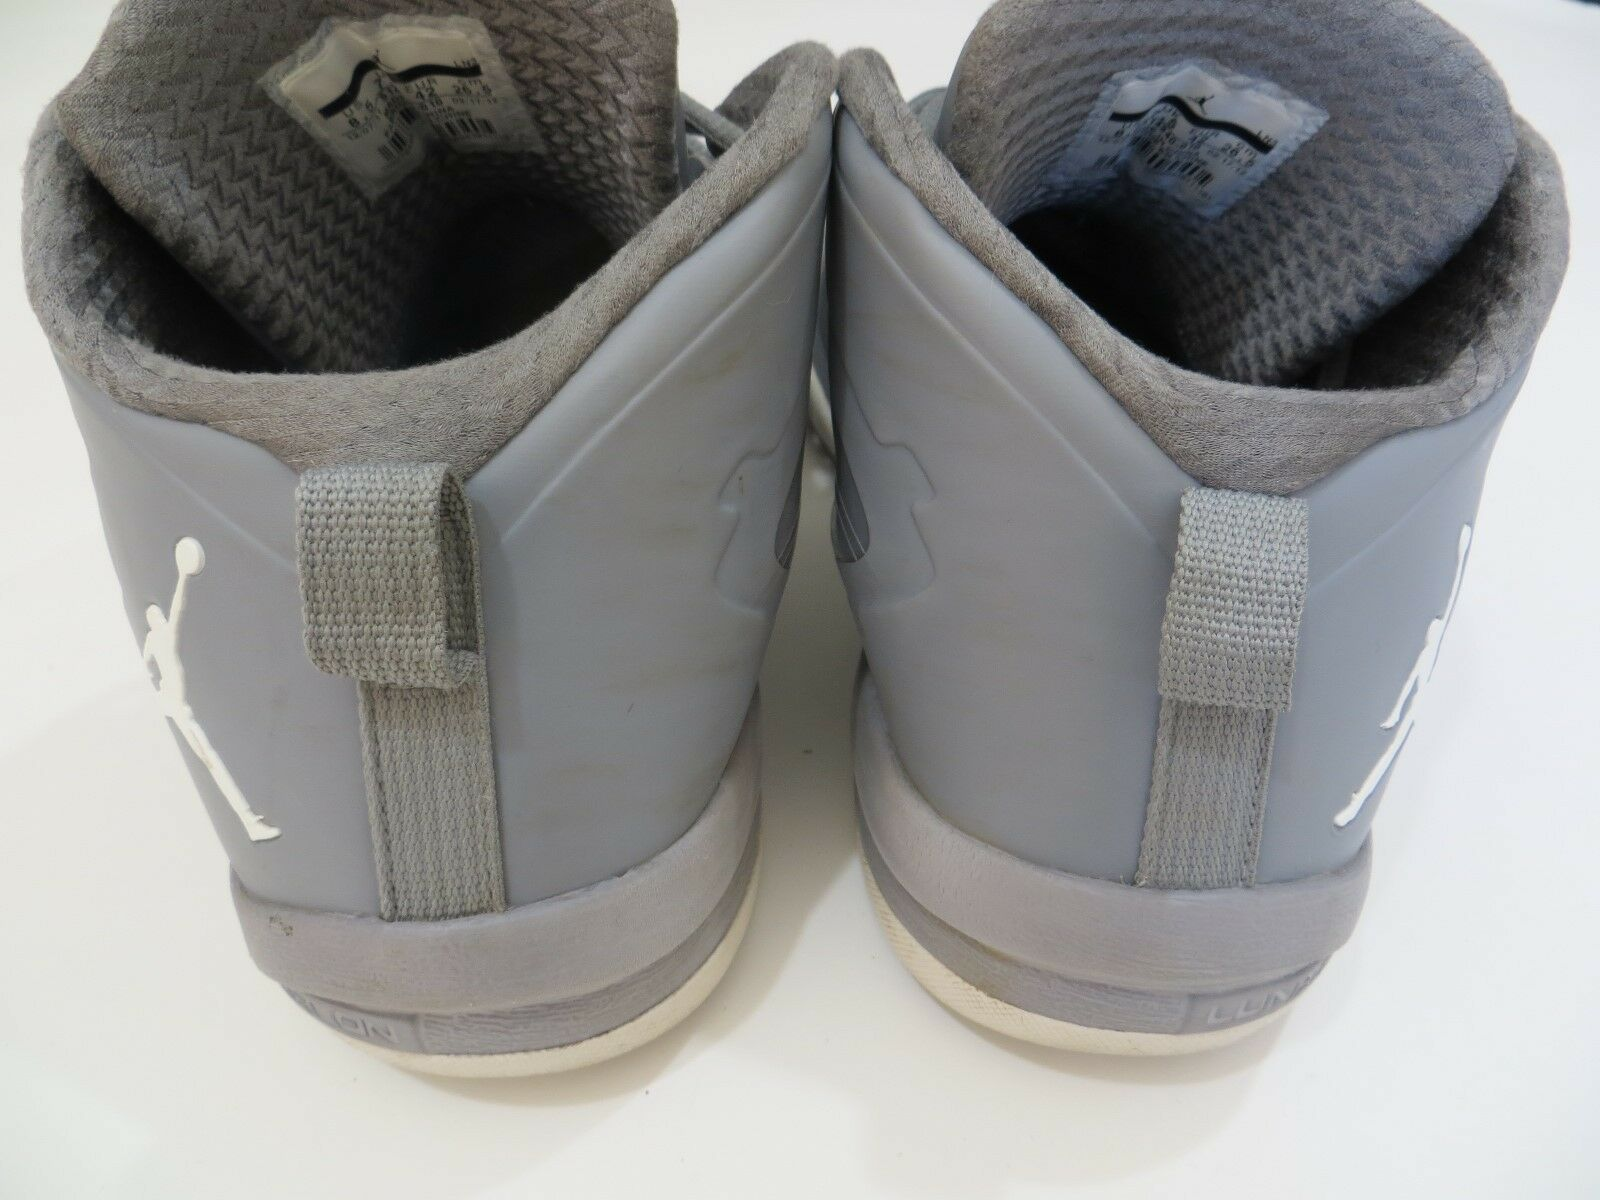 best service 92fa2 37f35 ... Jordan Fly Fly Fly Wade 2 EV Stealth White Gray sz 8.5 Nike Air Shoes  Mens ...